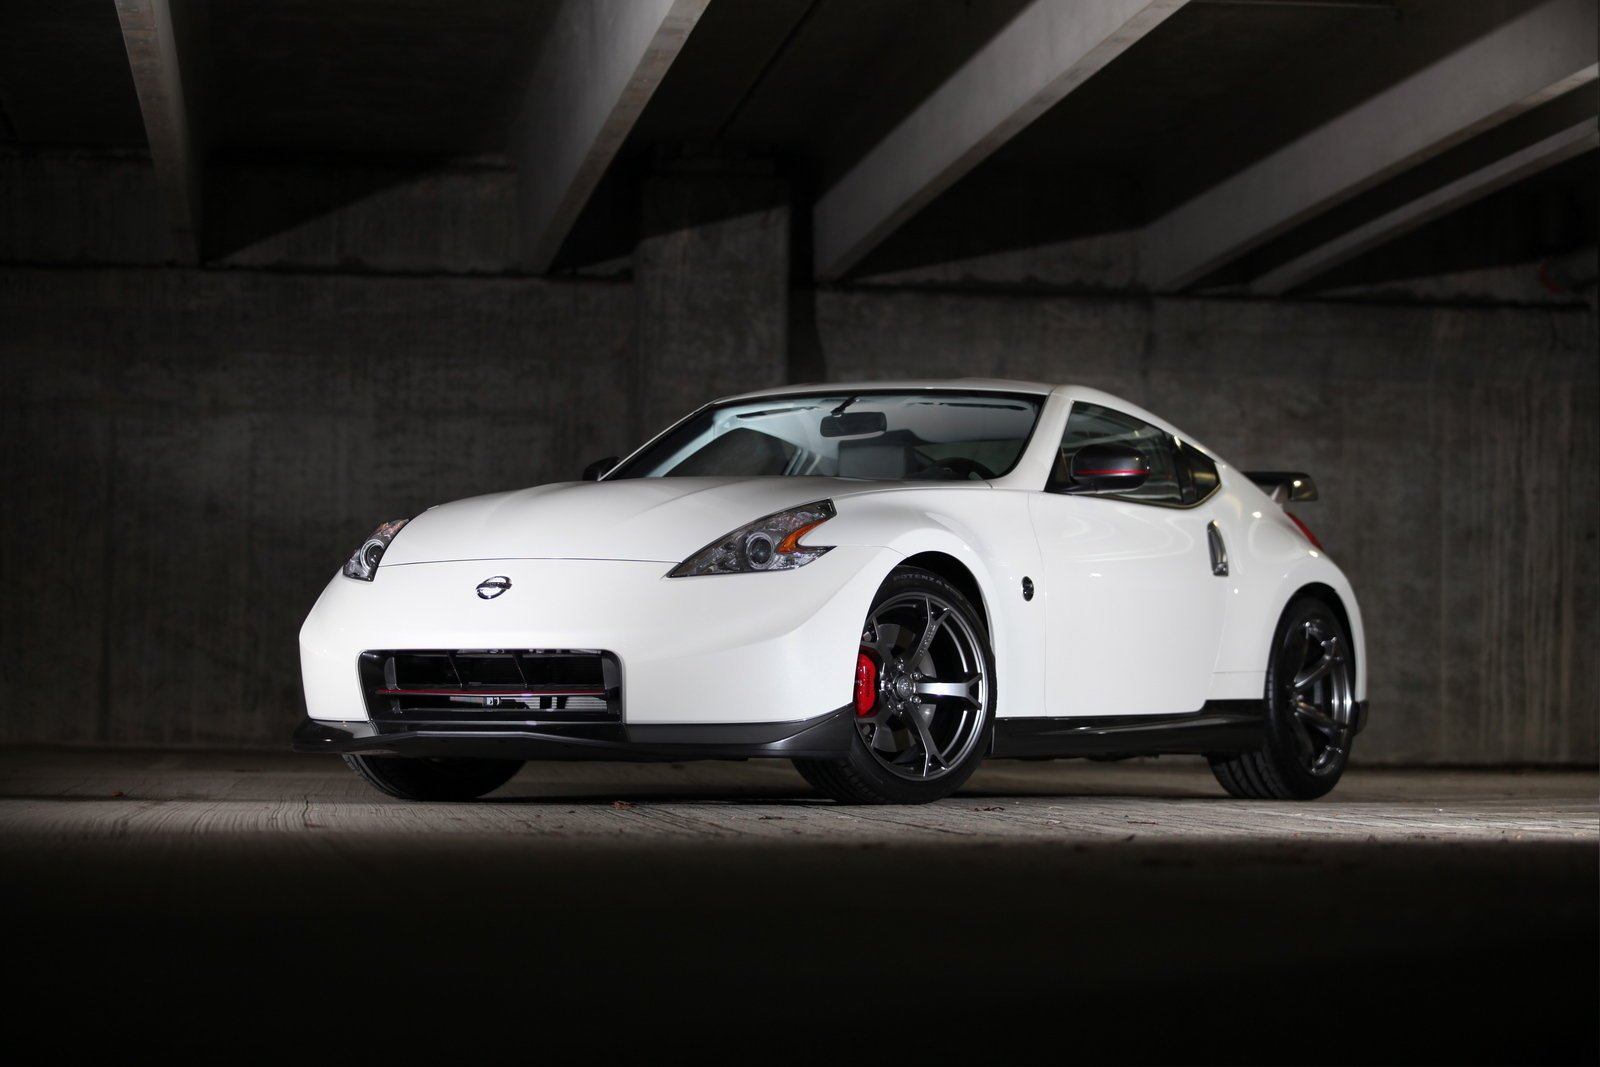 2014 nissan 370z nismo picture 503988 car review top speed. Black Bedroom Furniture Sets. Home Design Ideas